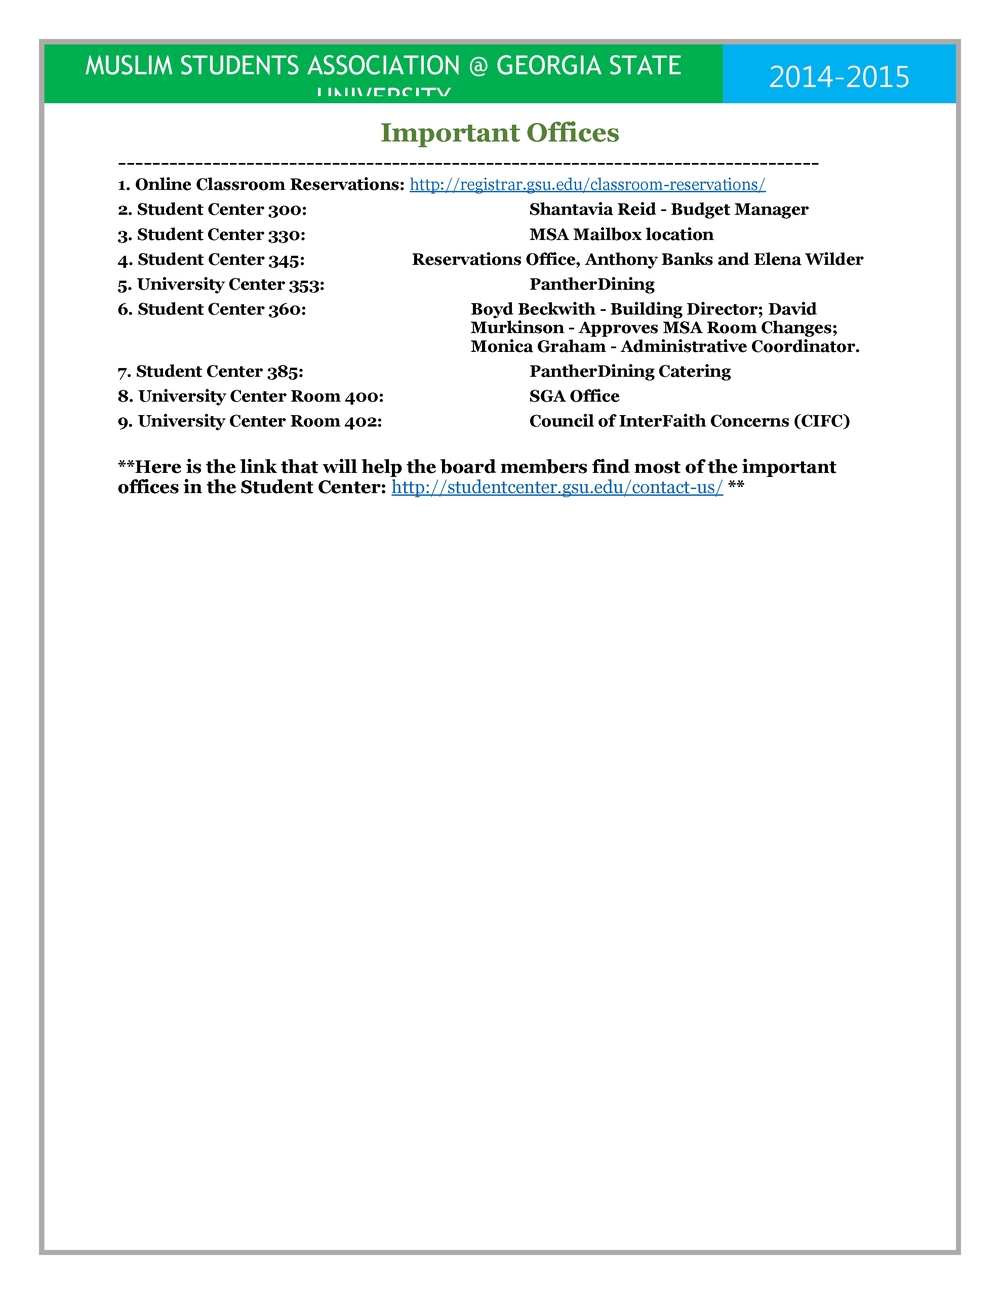 Organization Handbook FINALIZED 7.15.201412.jpg